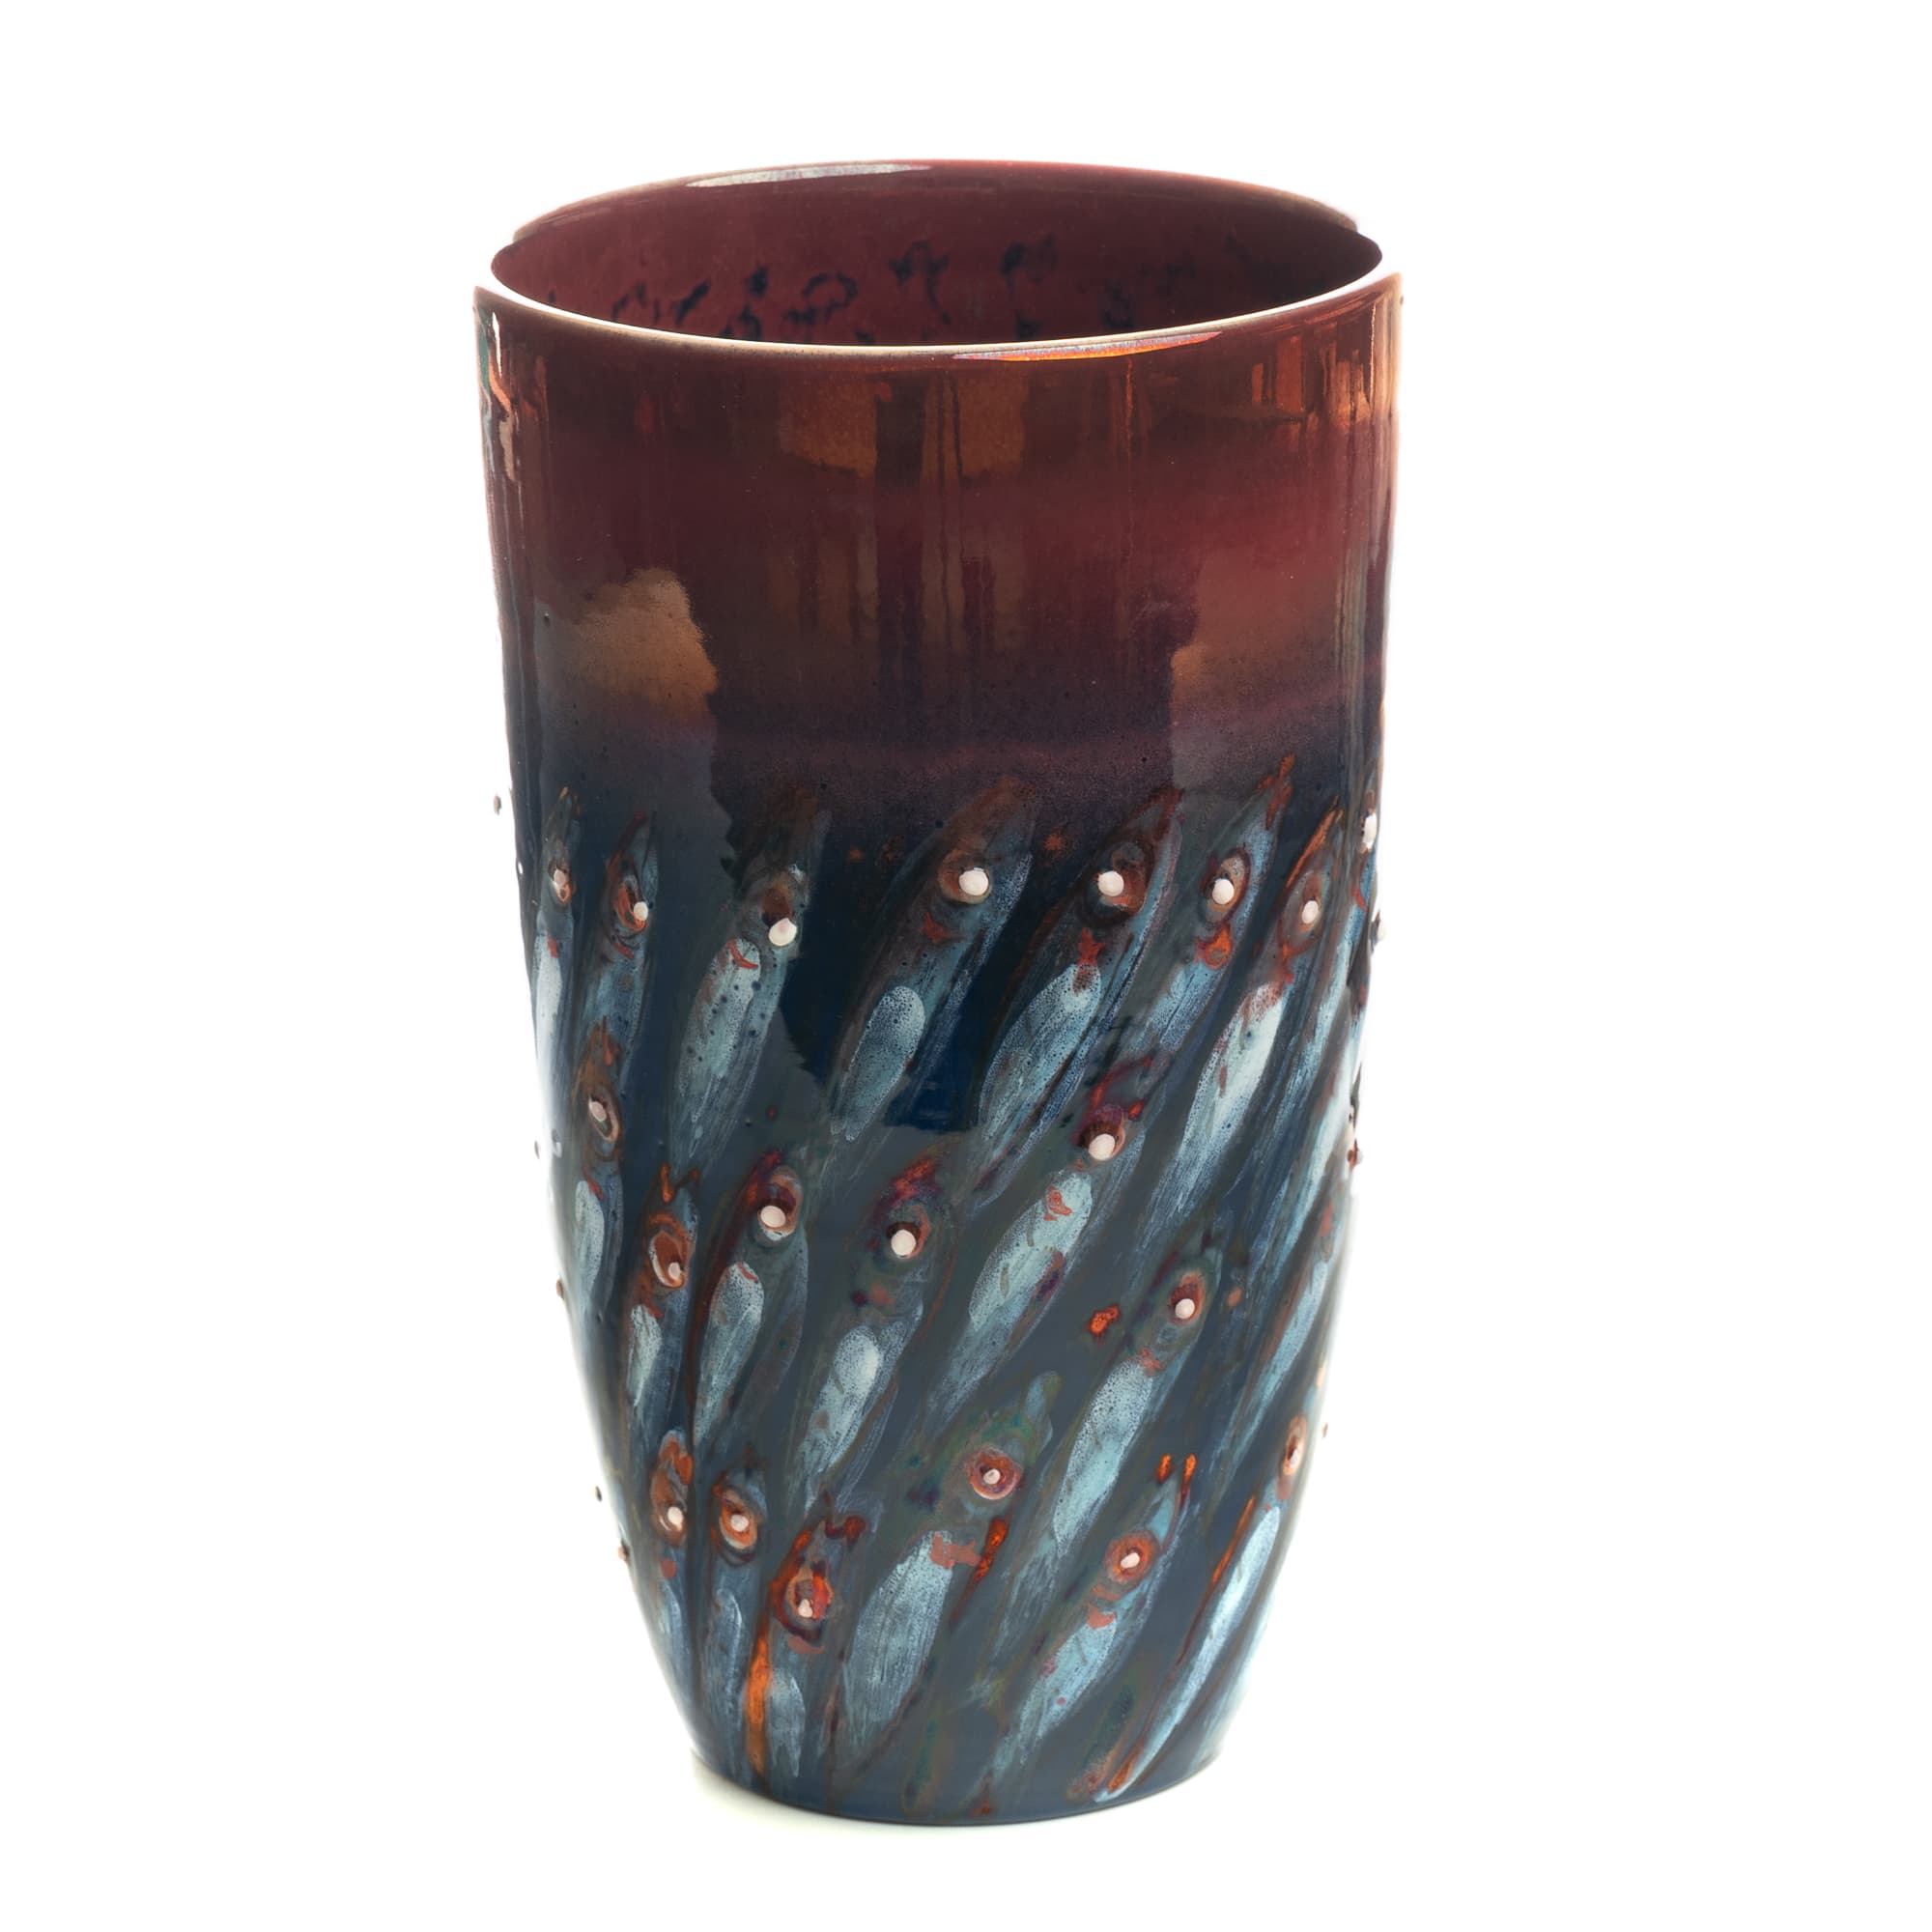 Vignoli Vase Copper Navy Anchovies Diagonal Design